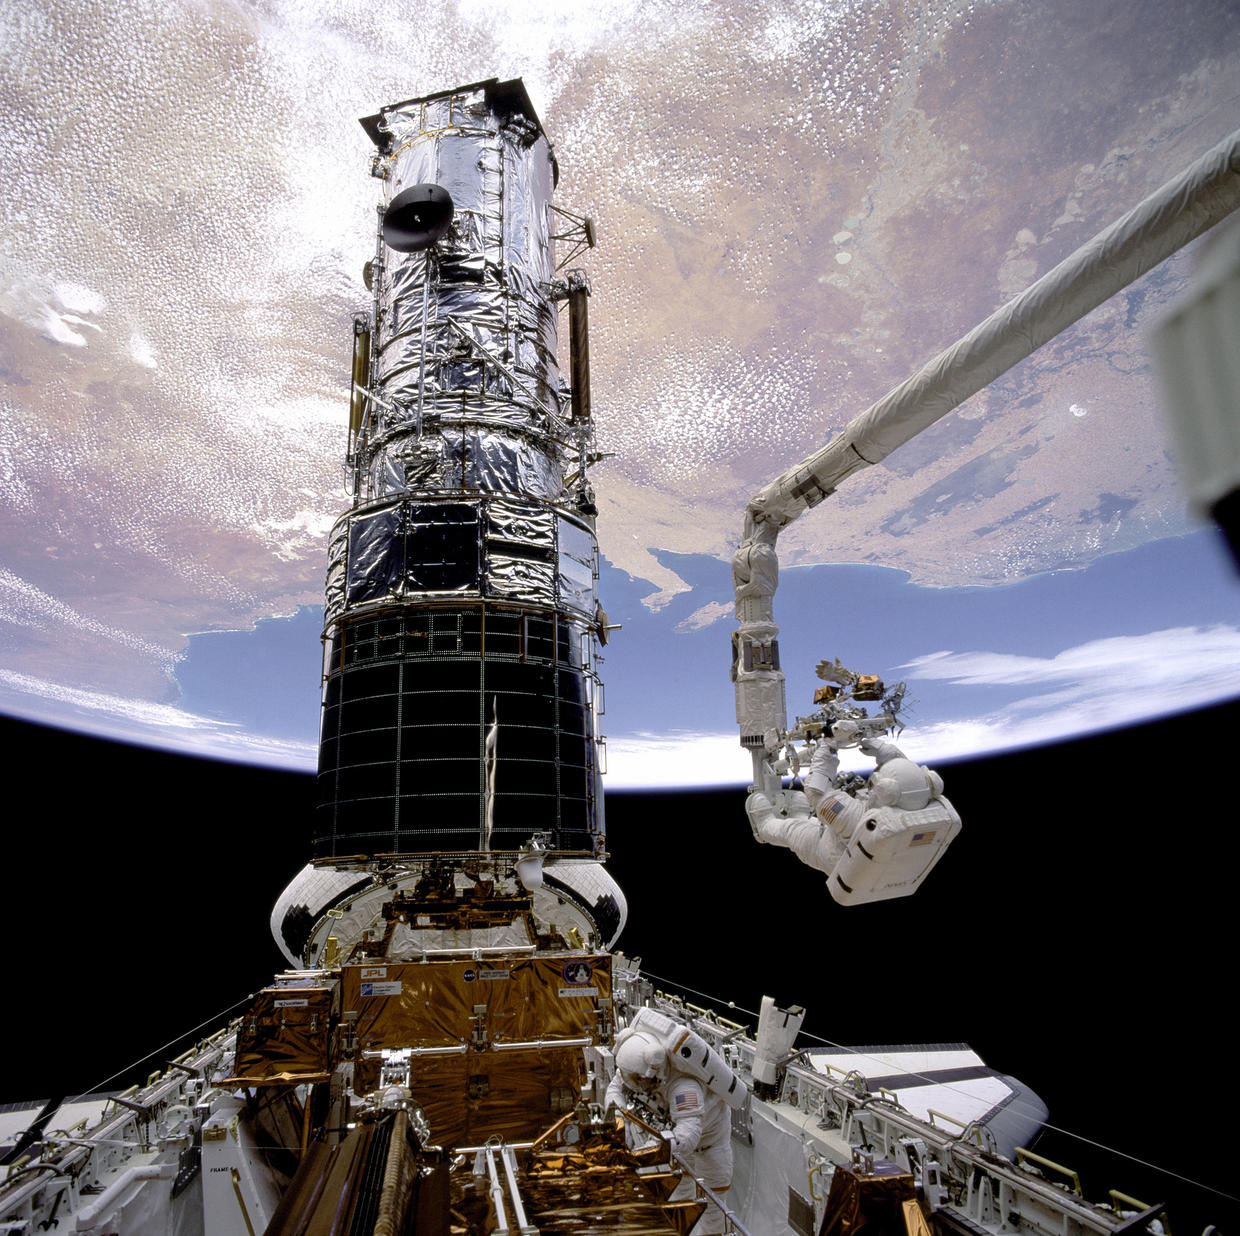 Endeavour astronauts repairing the Hubble Space Telescope in space